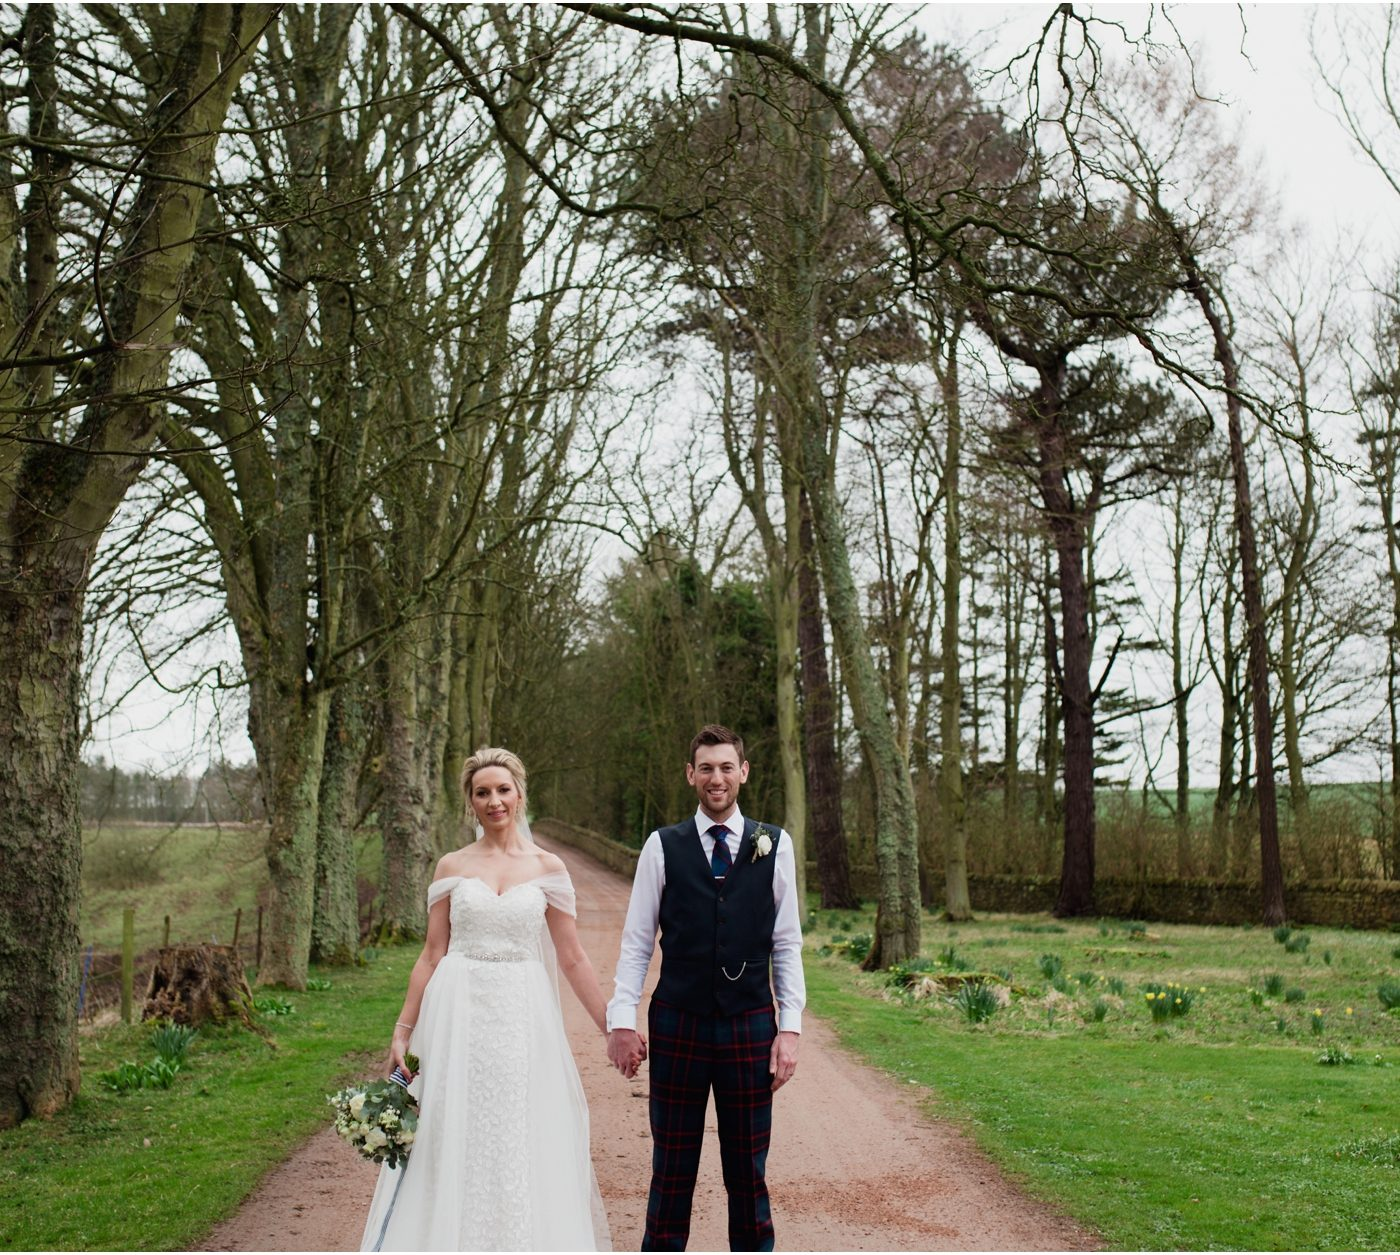 Spring barn wedding at Kinkell Byre - Leigh & Andrew